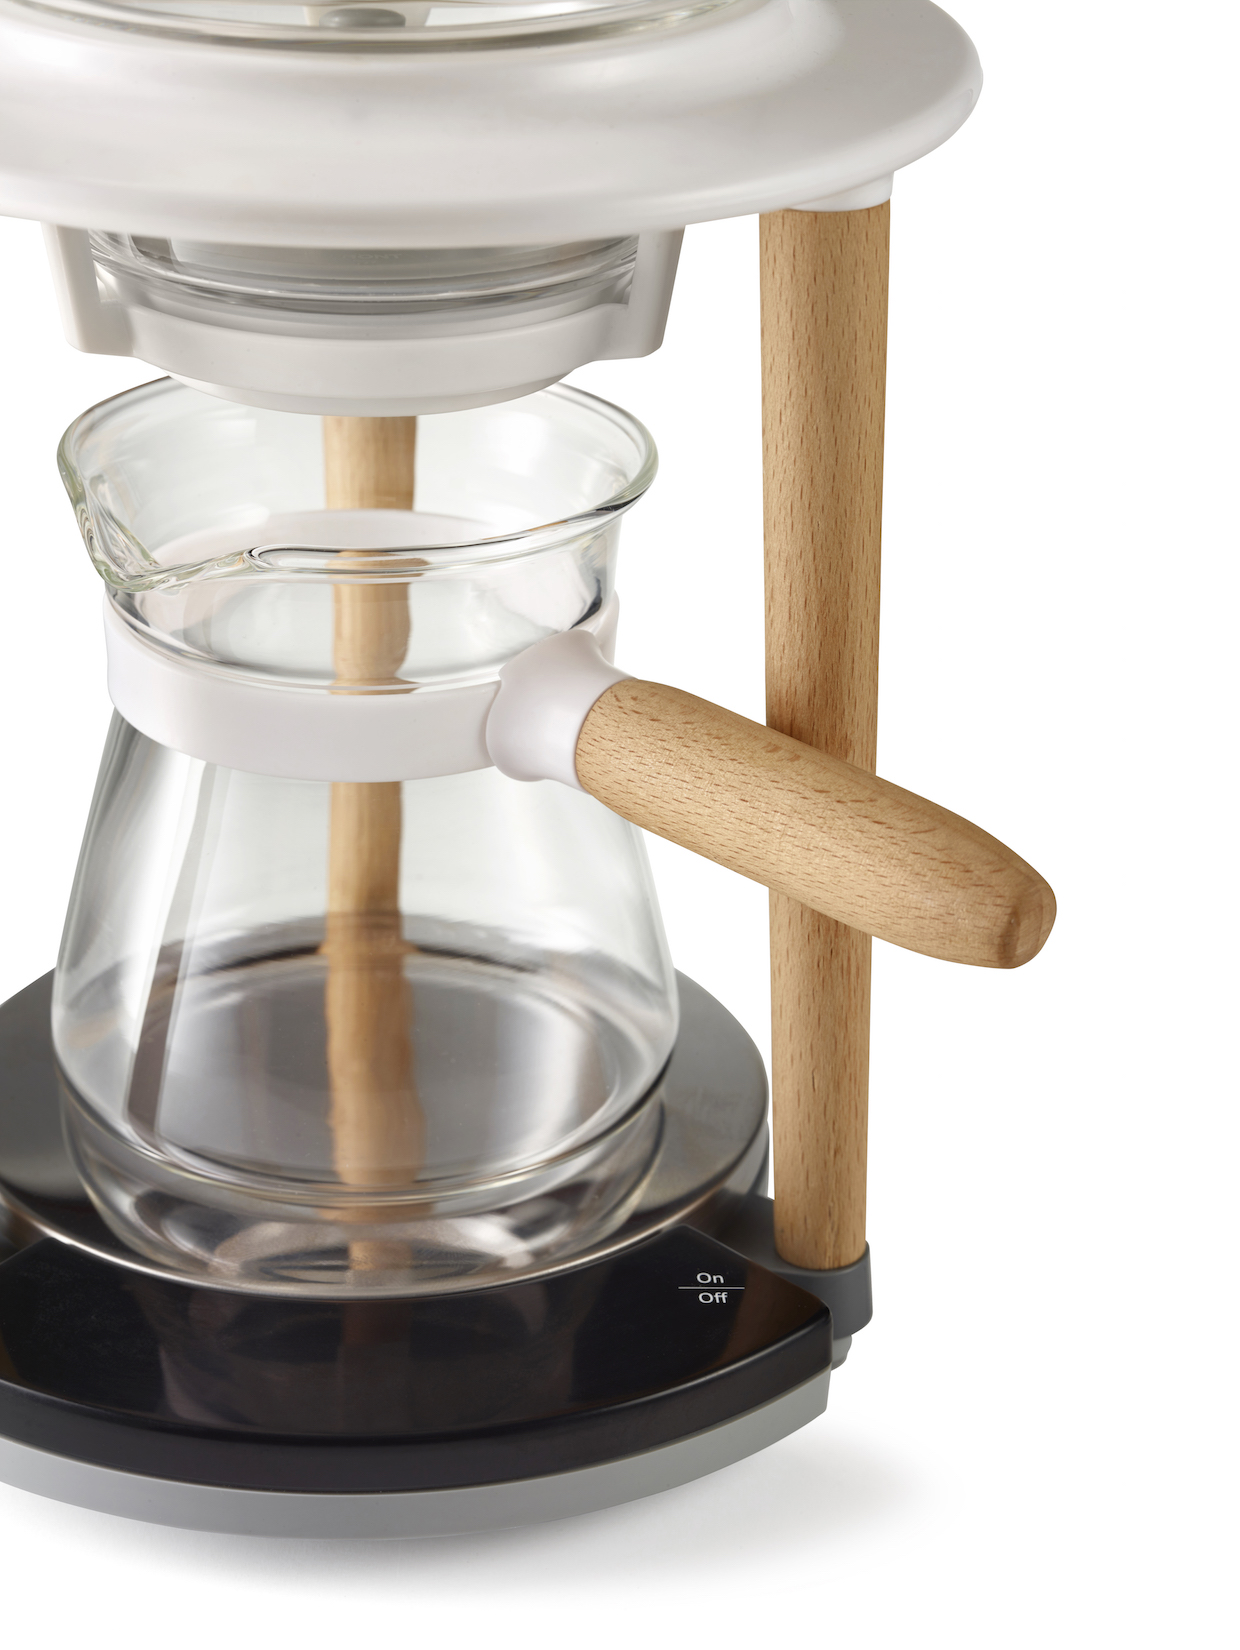 IoT pourover brewer